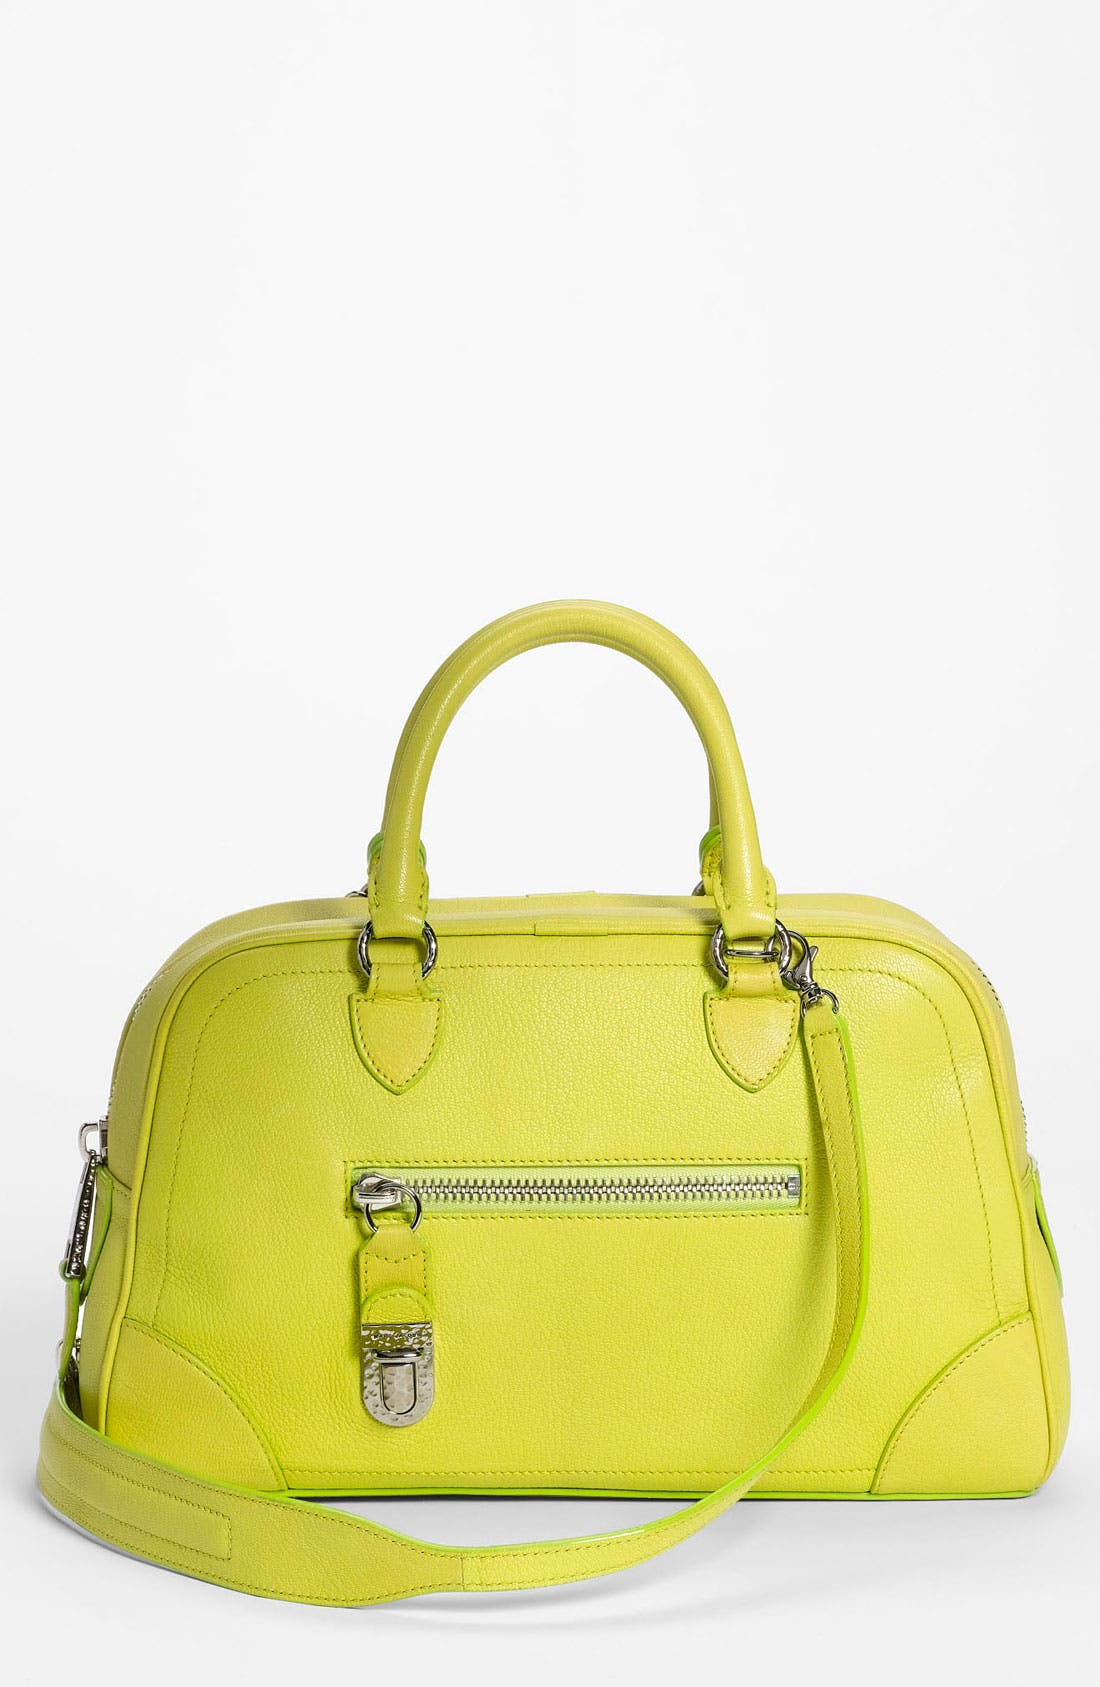 Alternate Image 1 Selected - MARC JACOBS 'Venetia - Small' Leather Satchel